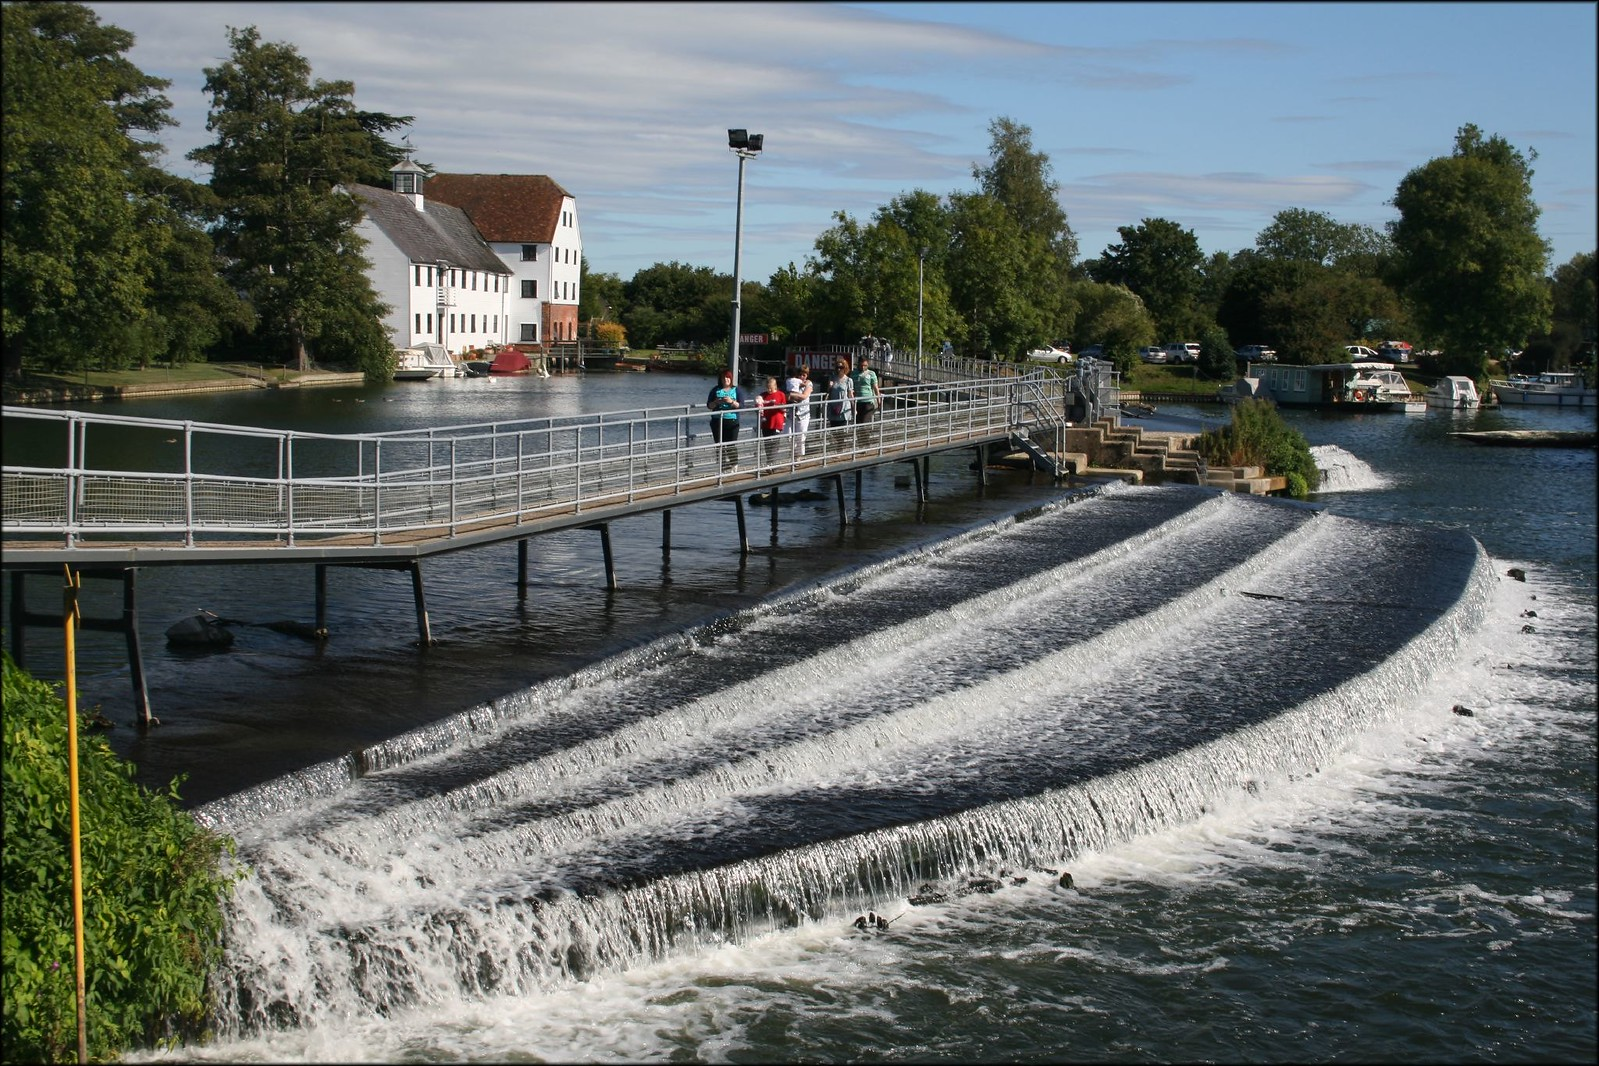 Hambleden Weir and Mill A footpath crosses the bridge over the weir.